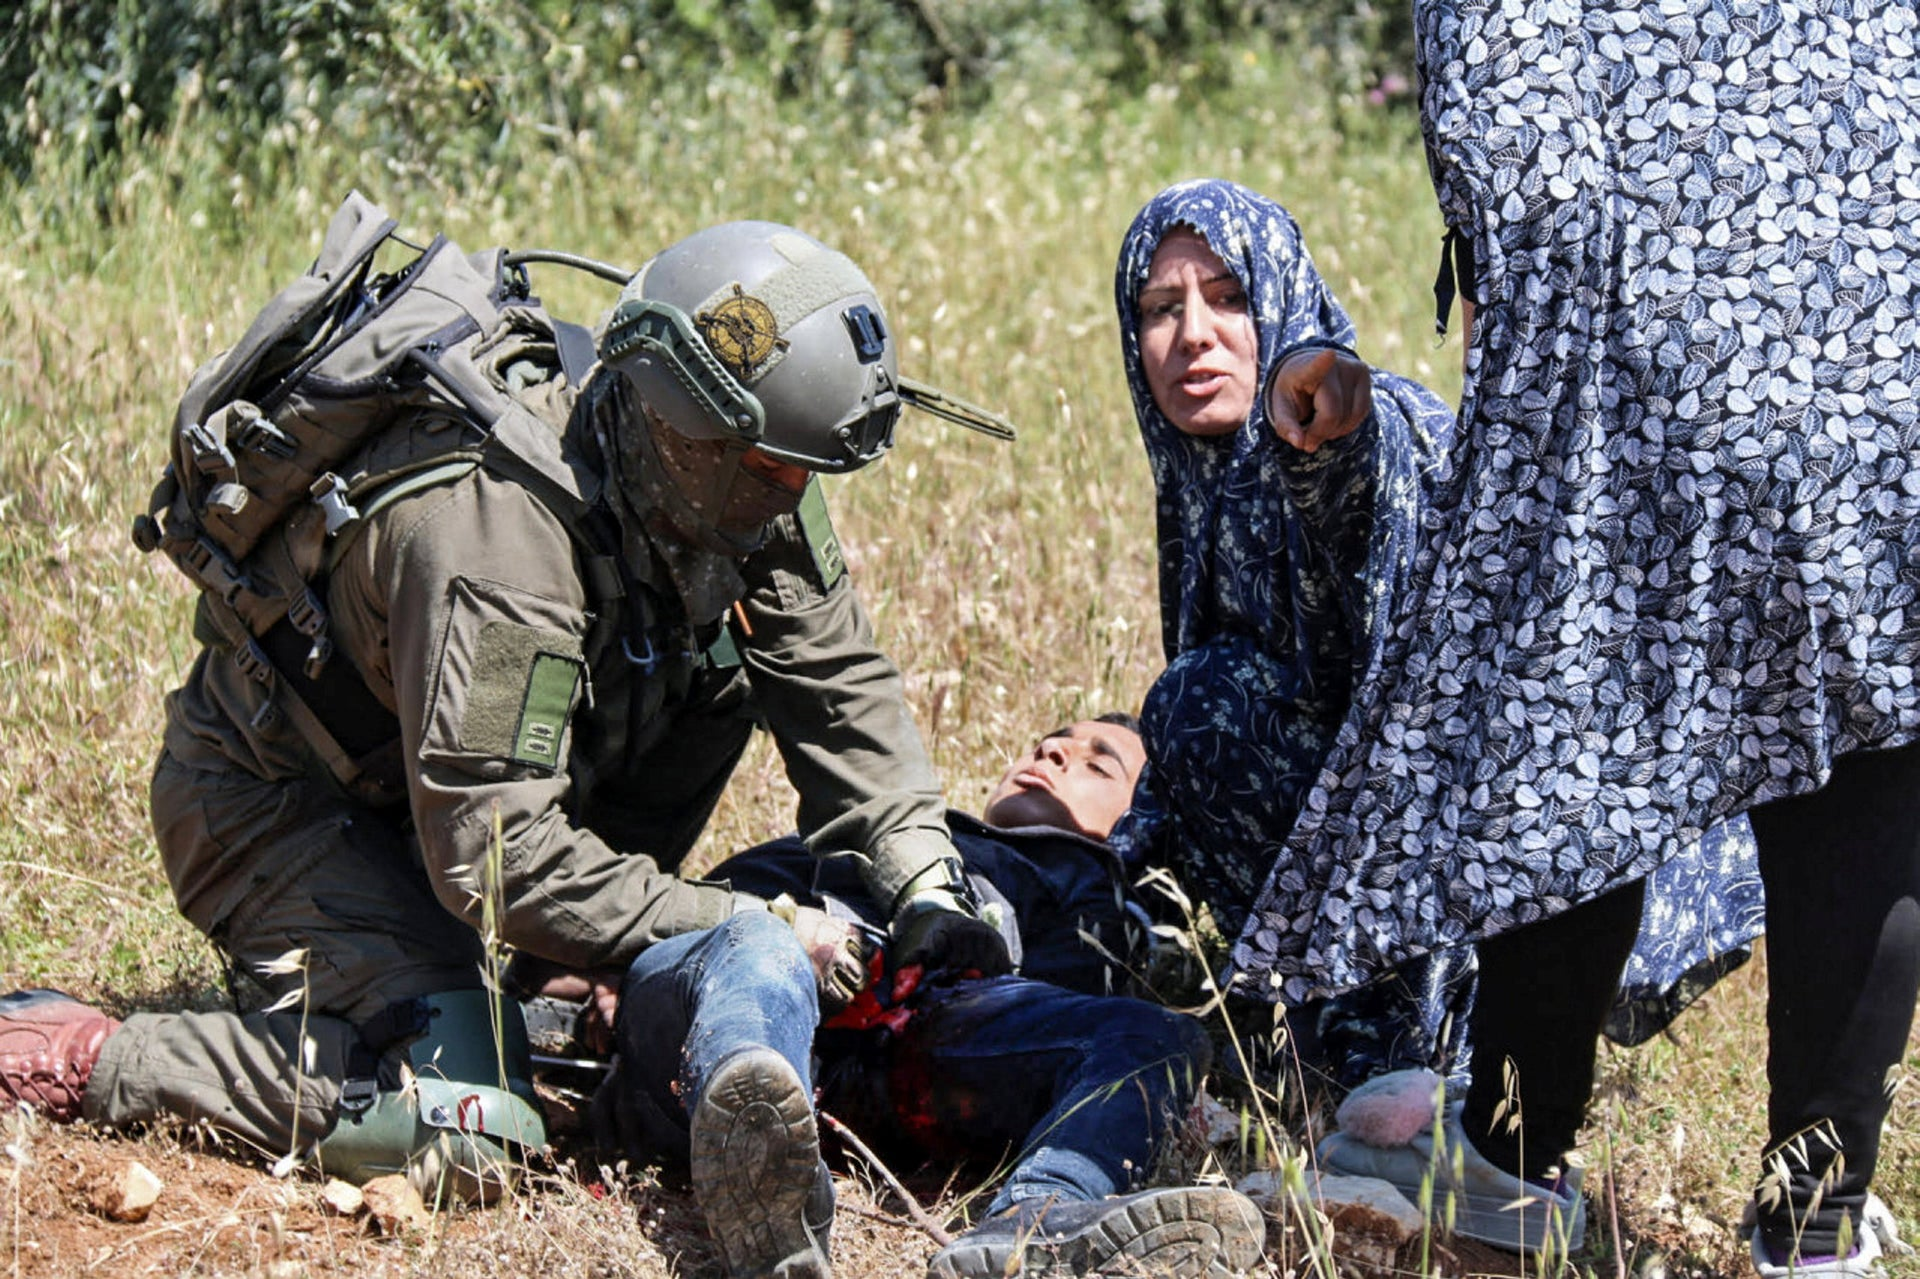 Osama Hajajeh is tended by a medic and two women from his village after being shot by Israeli soldiers, Tuqu, April 18, 2019.